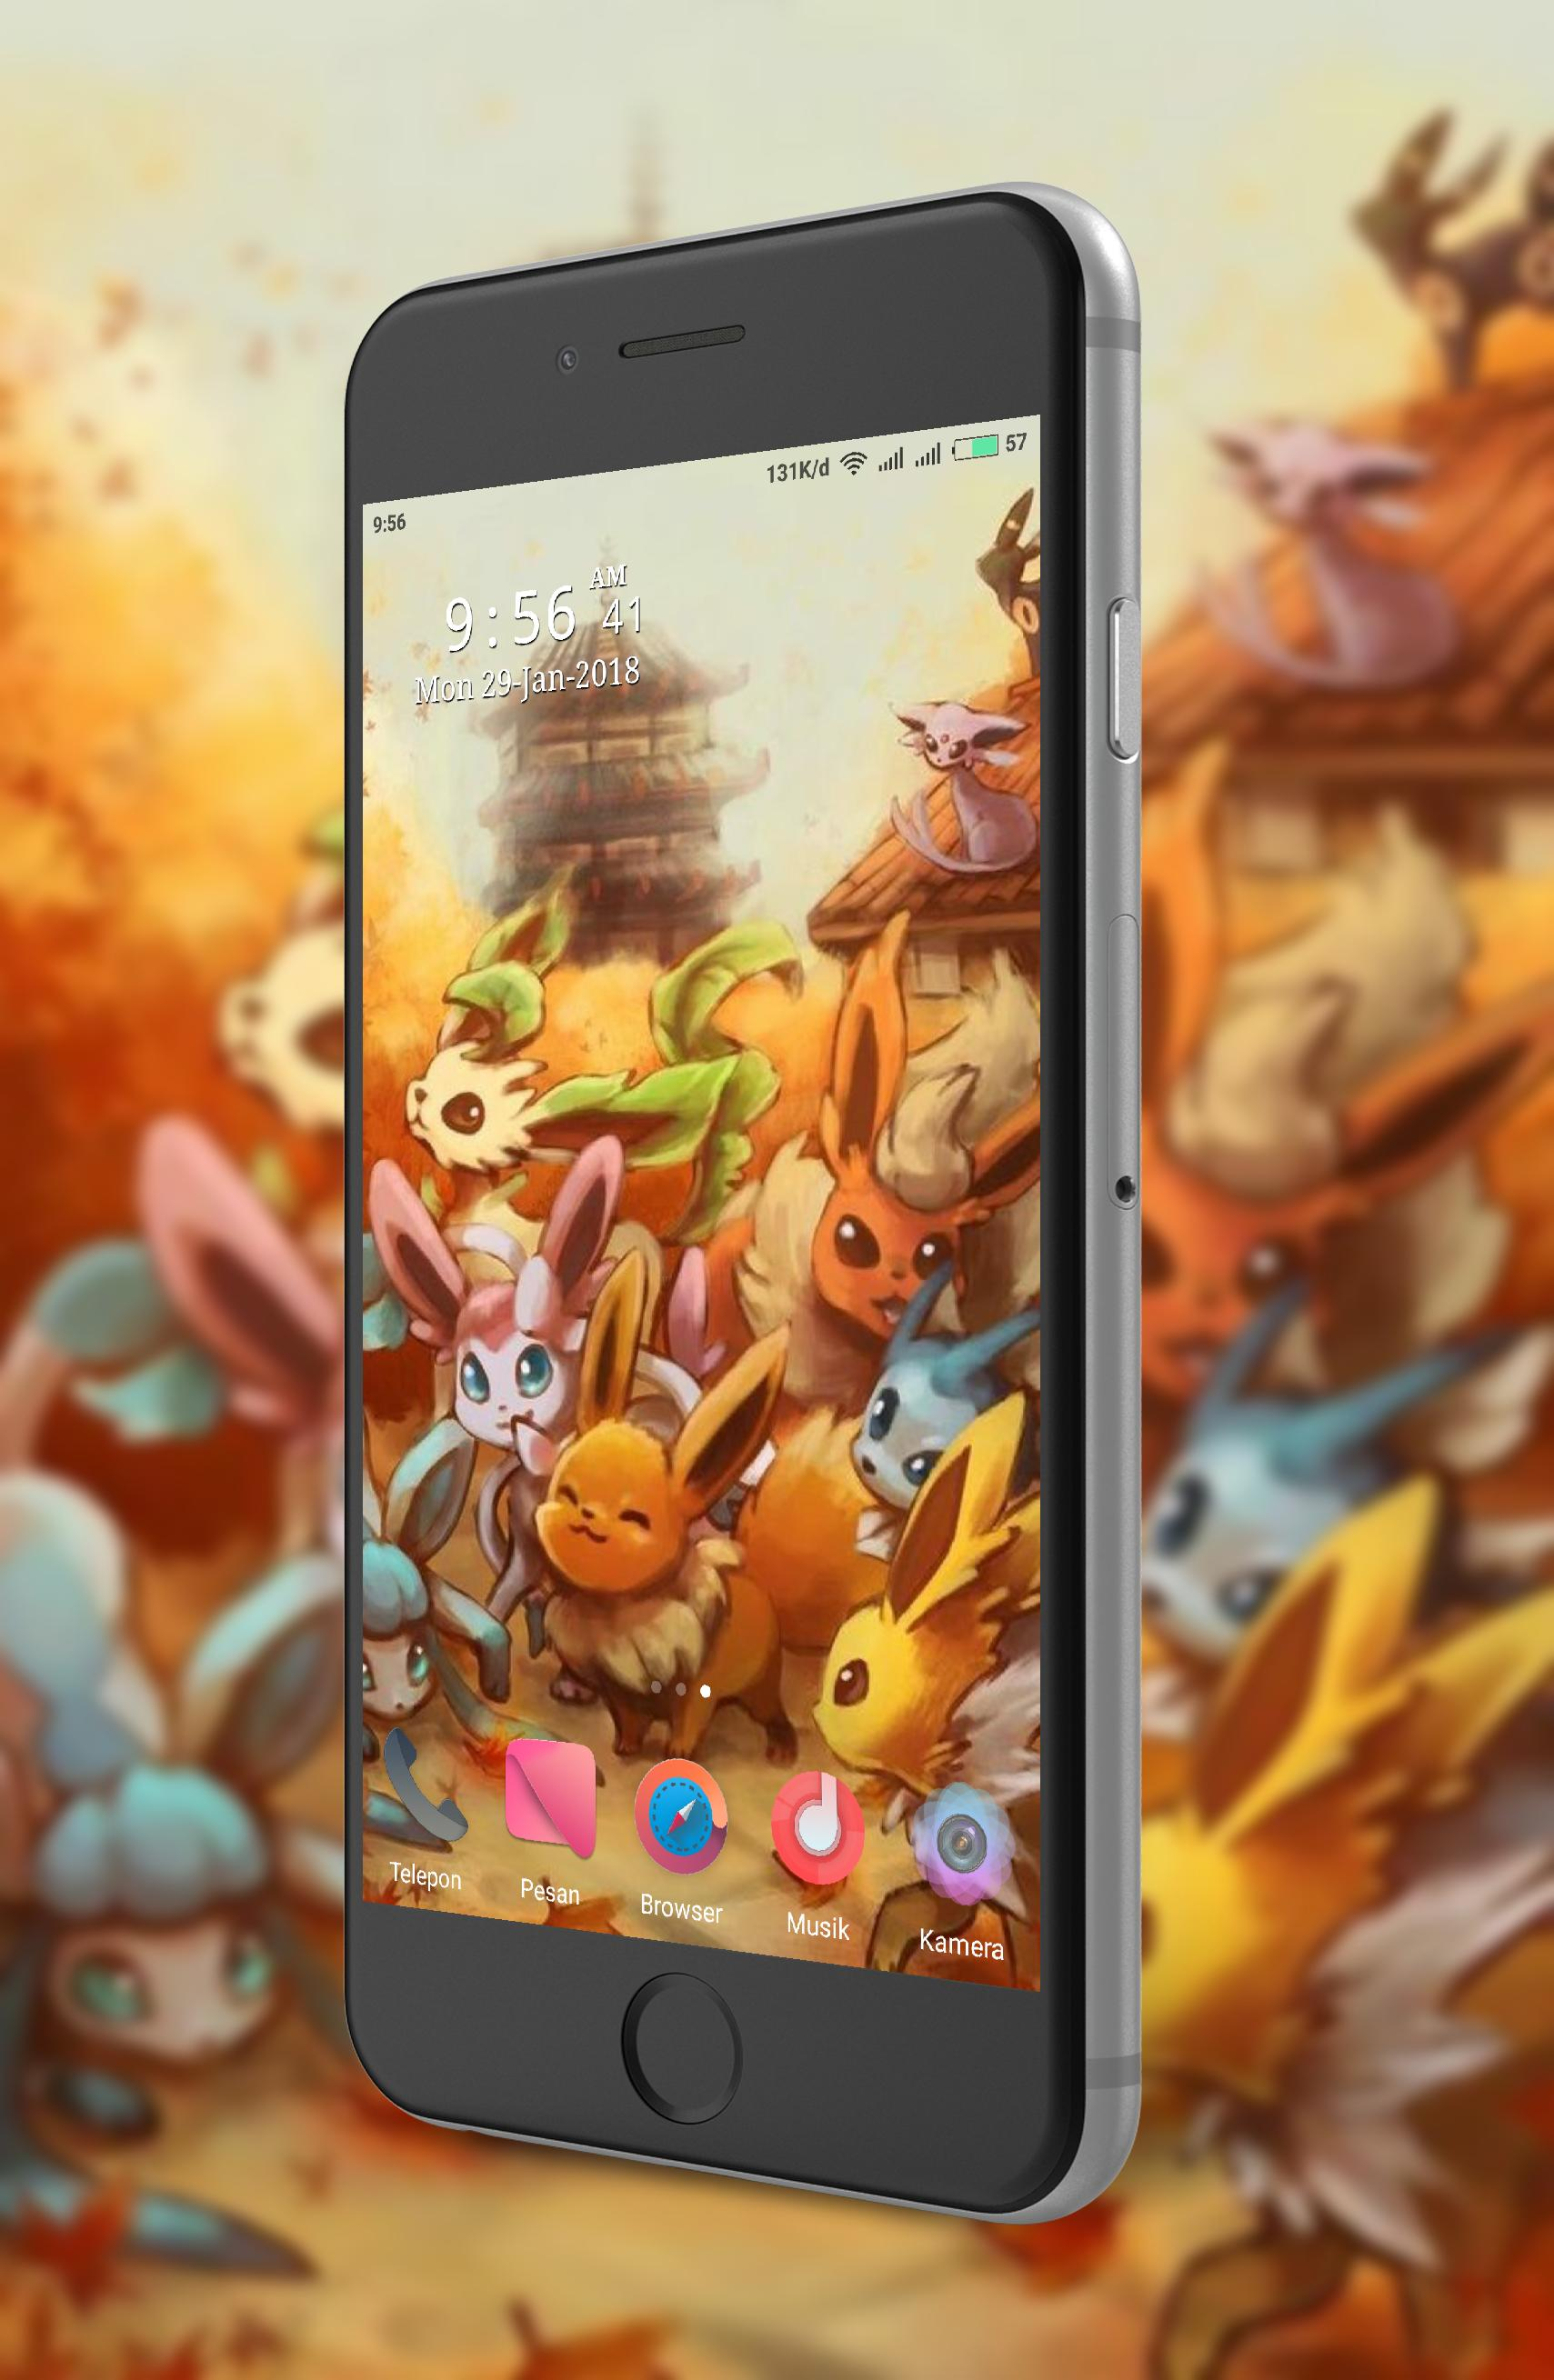 Eevee Evolution Wallpaper for Android - APK Download